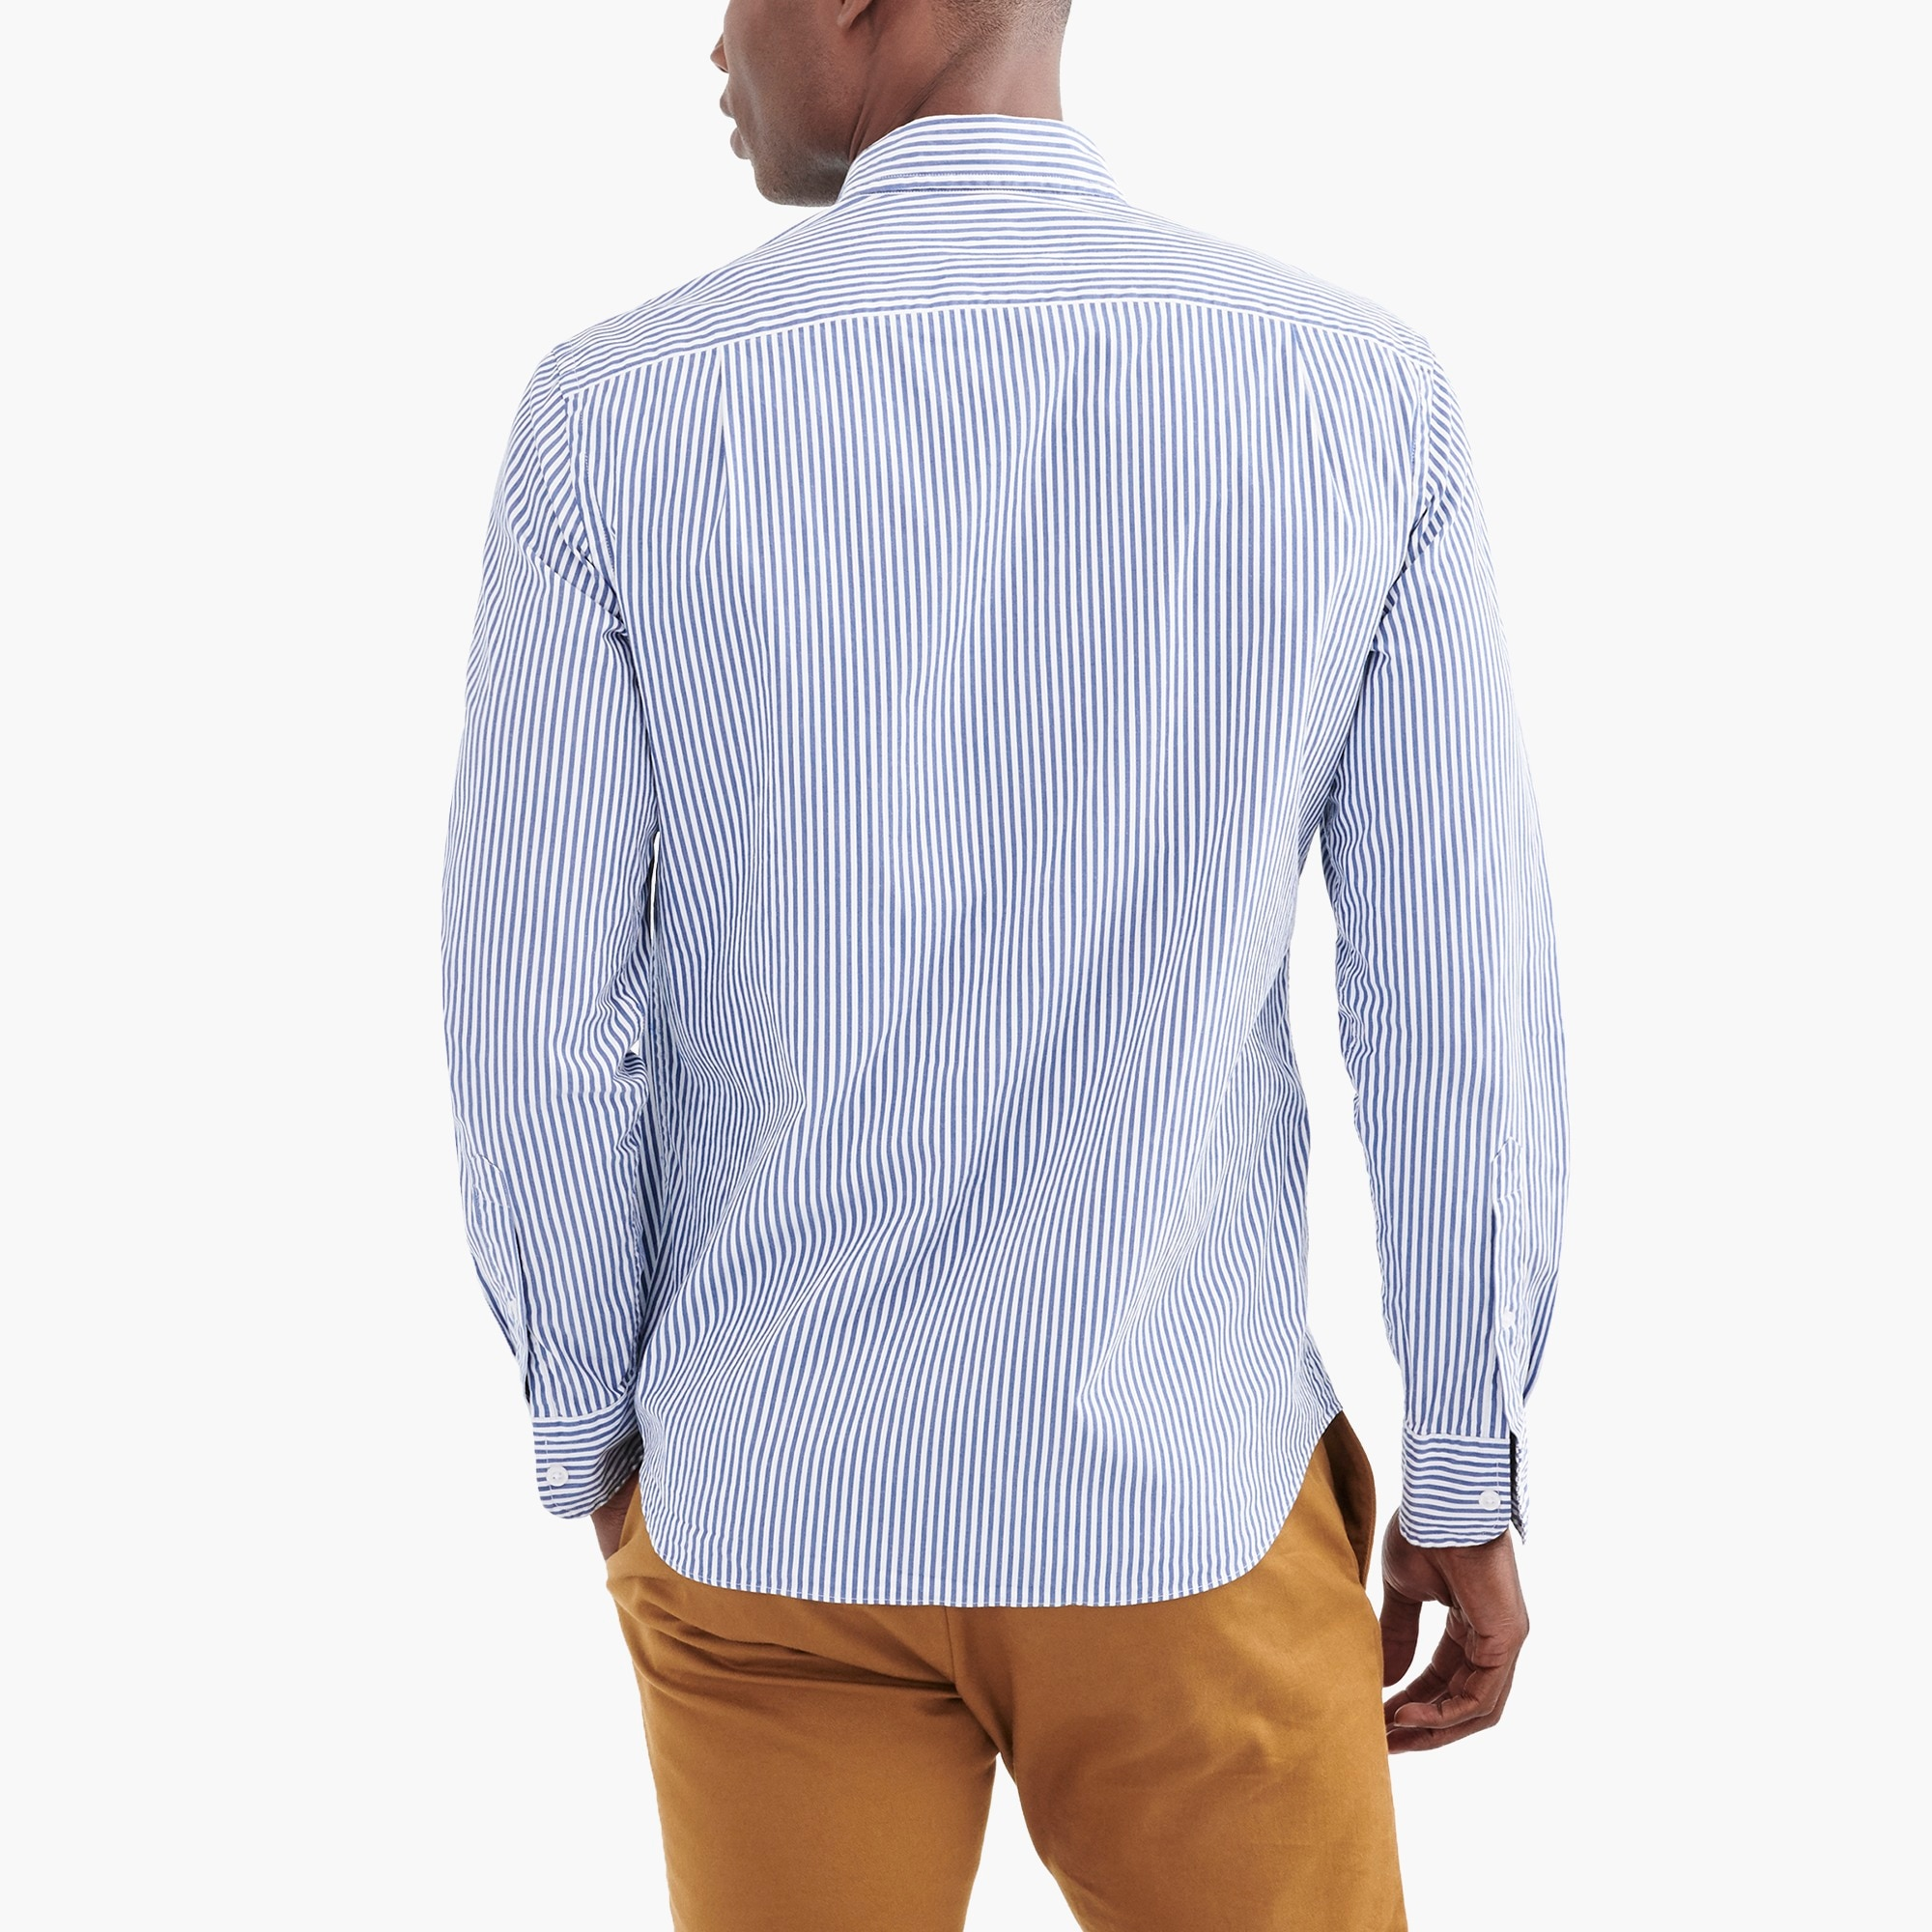 Image 2 for Flex washed shirt in stripe